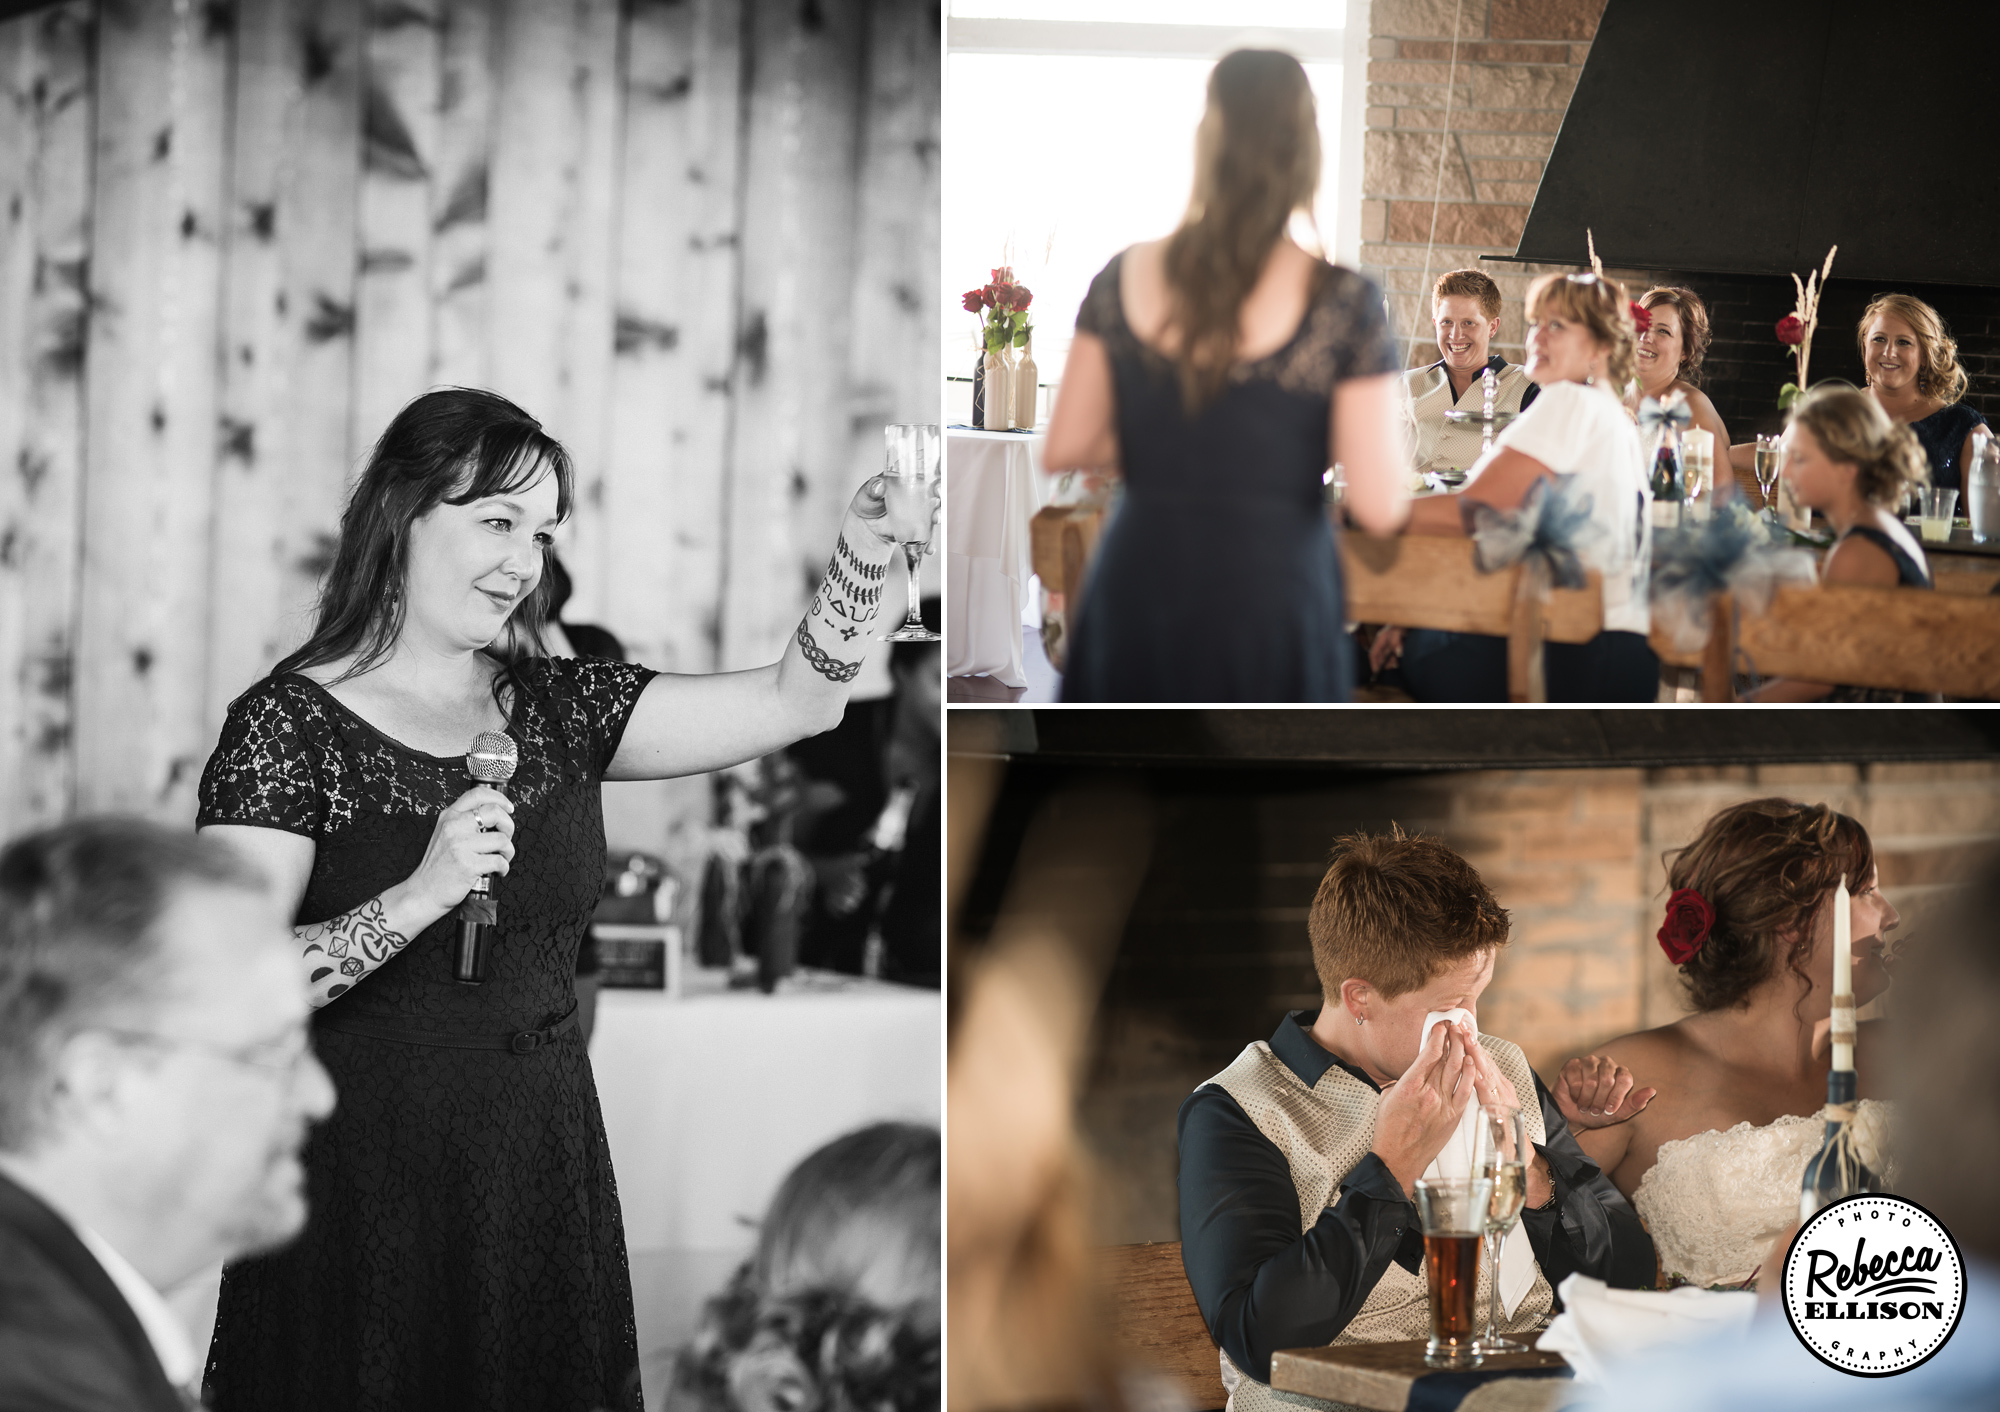 Toasts at an intimate wedding photographed by Rebecca Ellison Photography